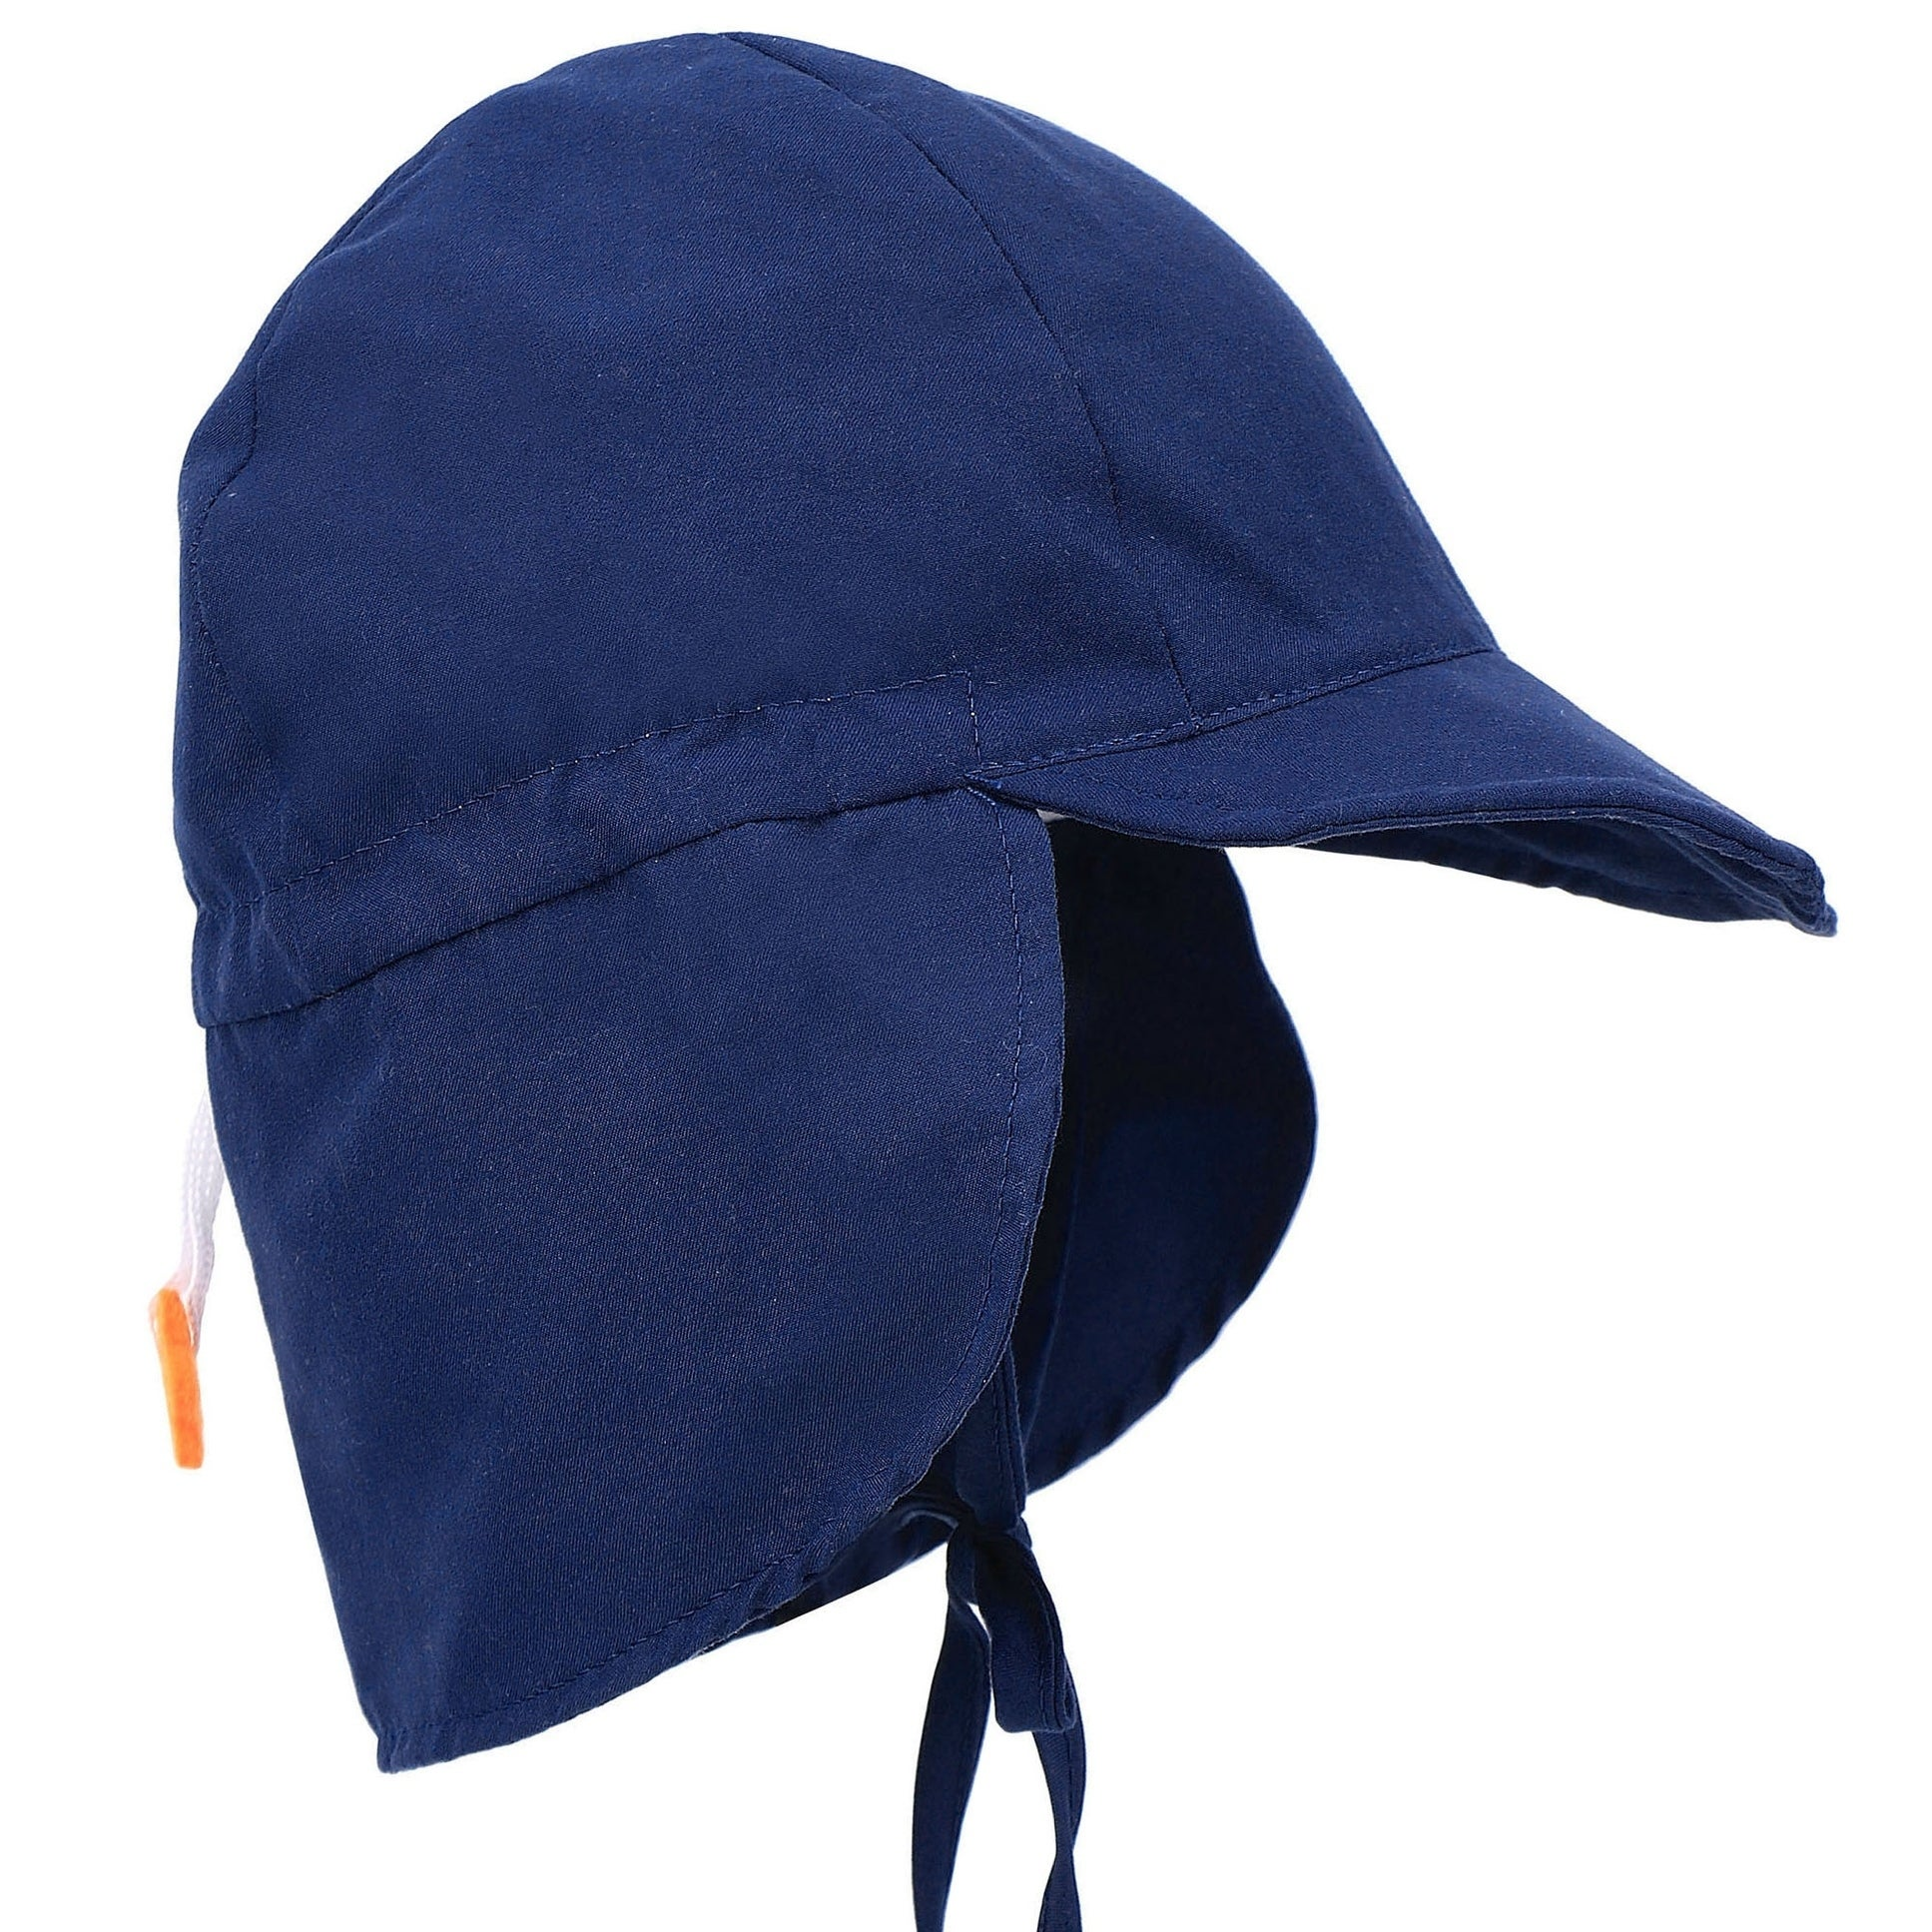 Details about UPF 50+ UV Ray Sun Protection Baby Hat w  Neck Flap    Drawstring ea5857a8c9a